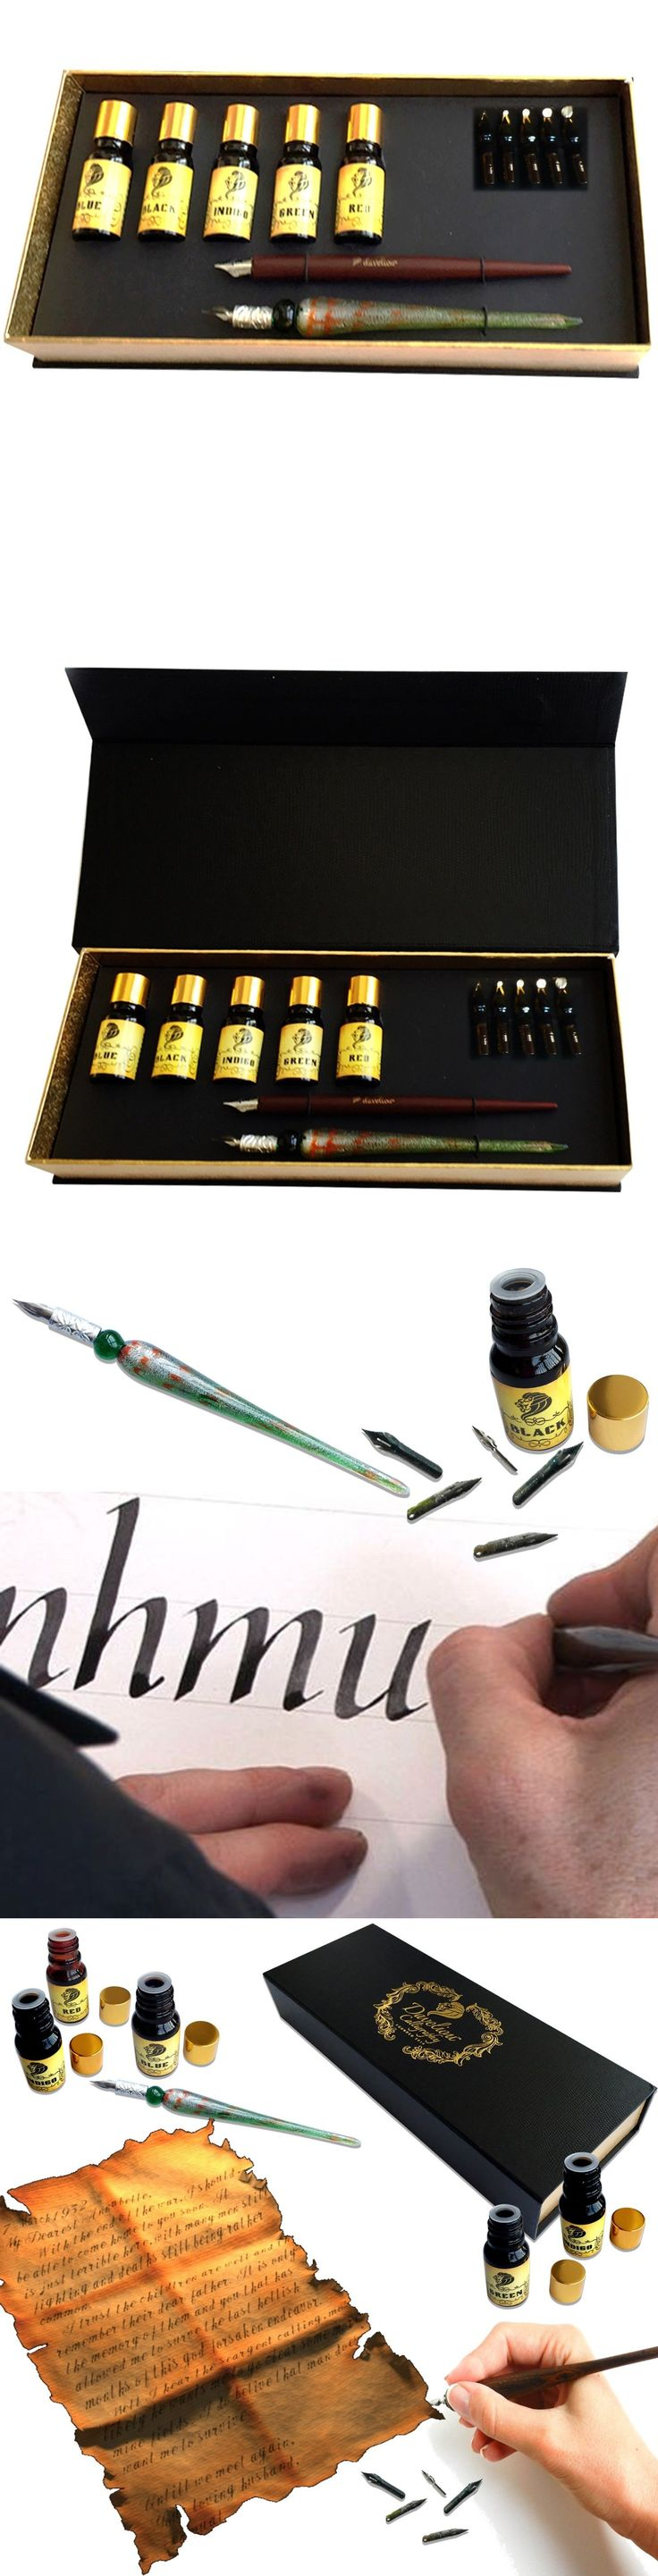 Calligraphy Sets 41203: Calligraphy Pen Gift Set - 12-Piece Kit - Free Glass Pen - 5 Nib 5 Ink Set New! -> BUY IT NOW ONLY: $49.99 on eBay!